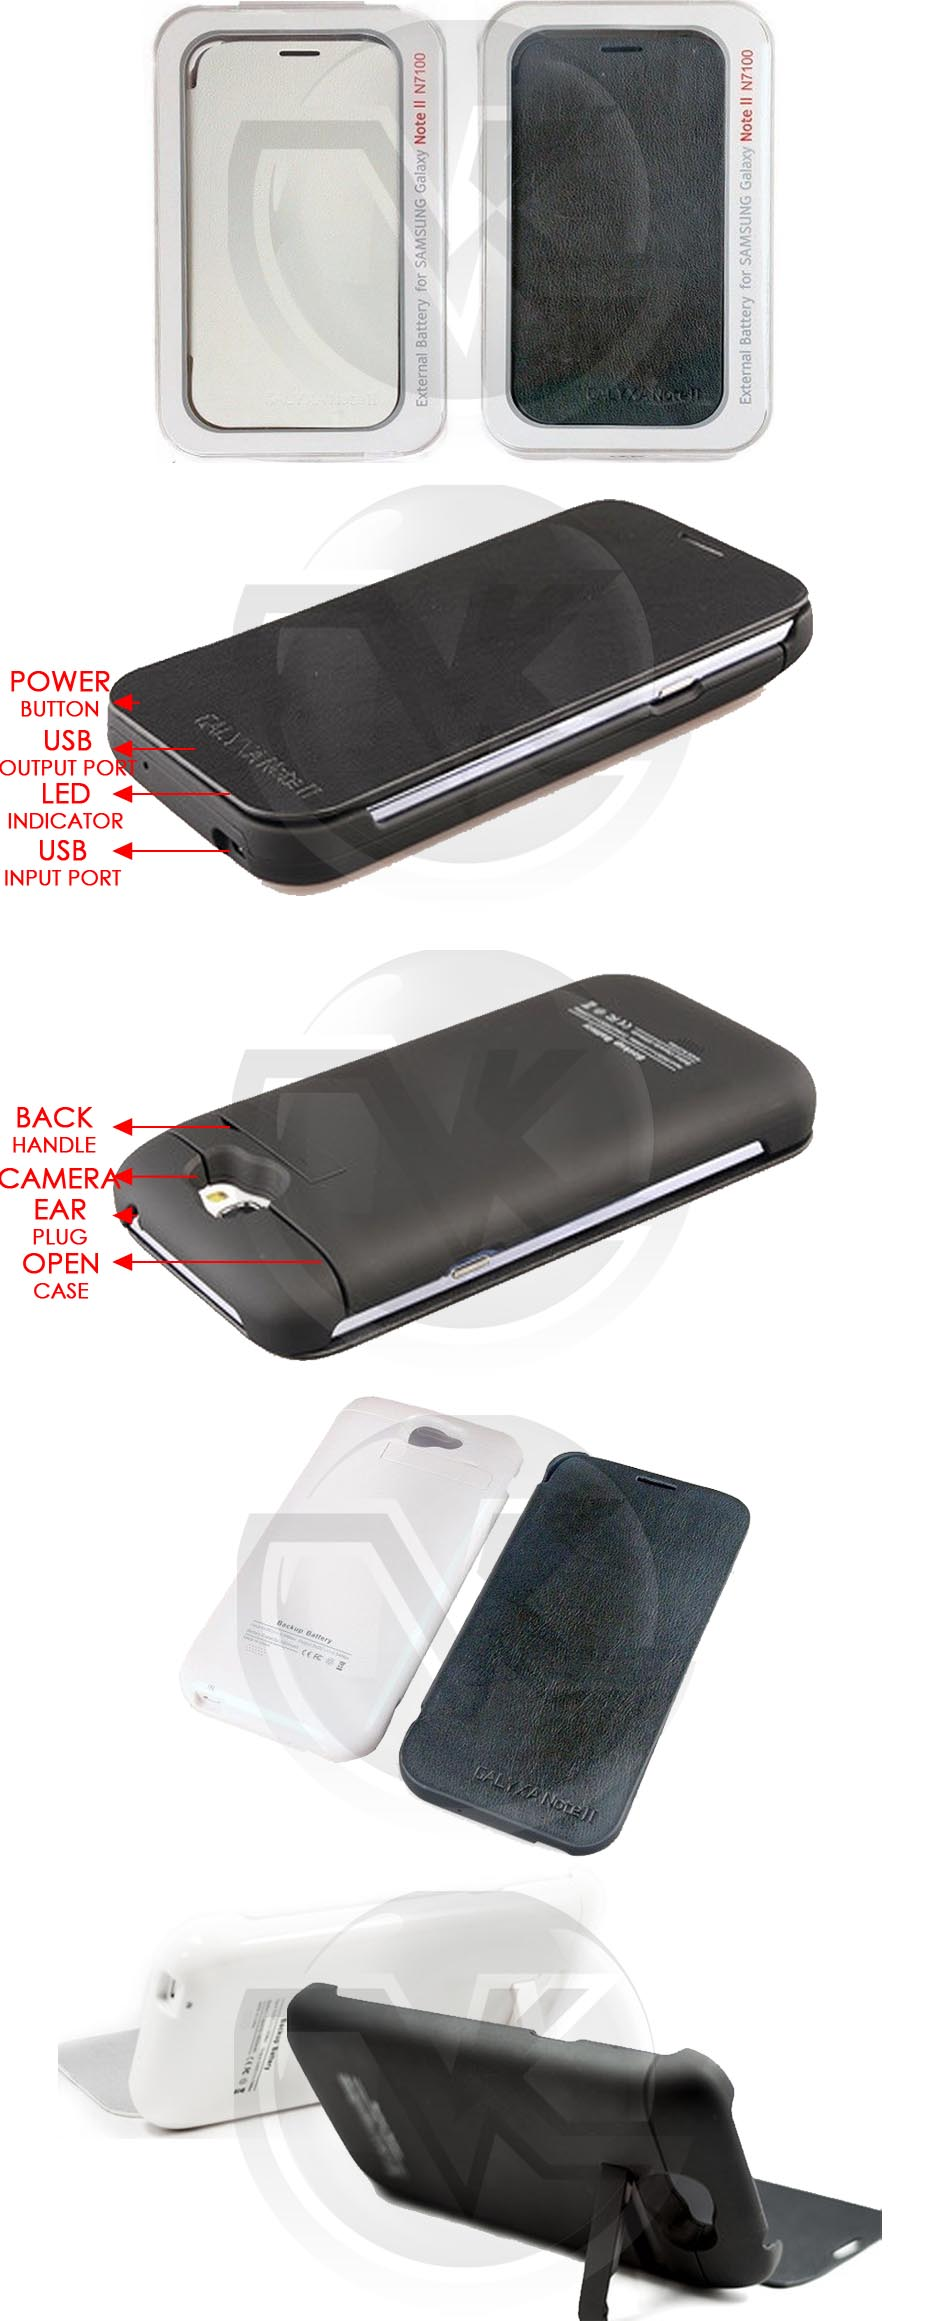 Power Case Flip Cover 4800mAh for Samsung Galaxy Note2 N7100 Overview